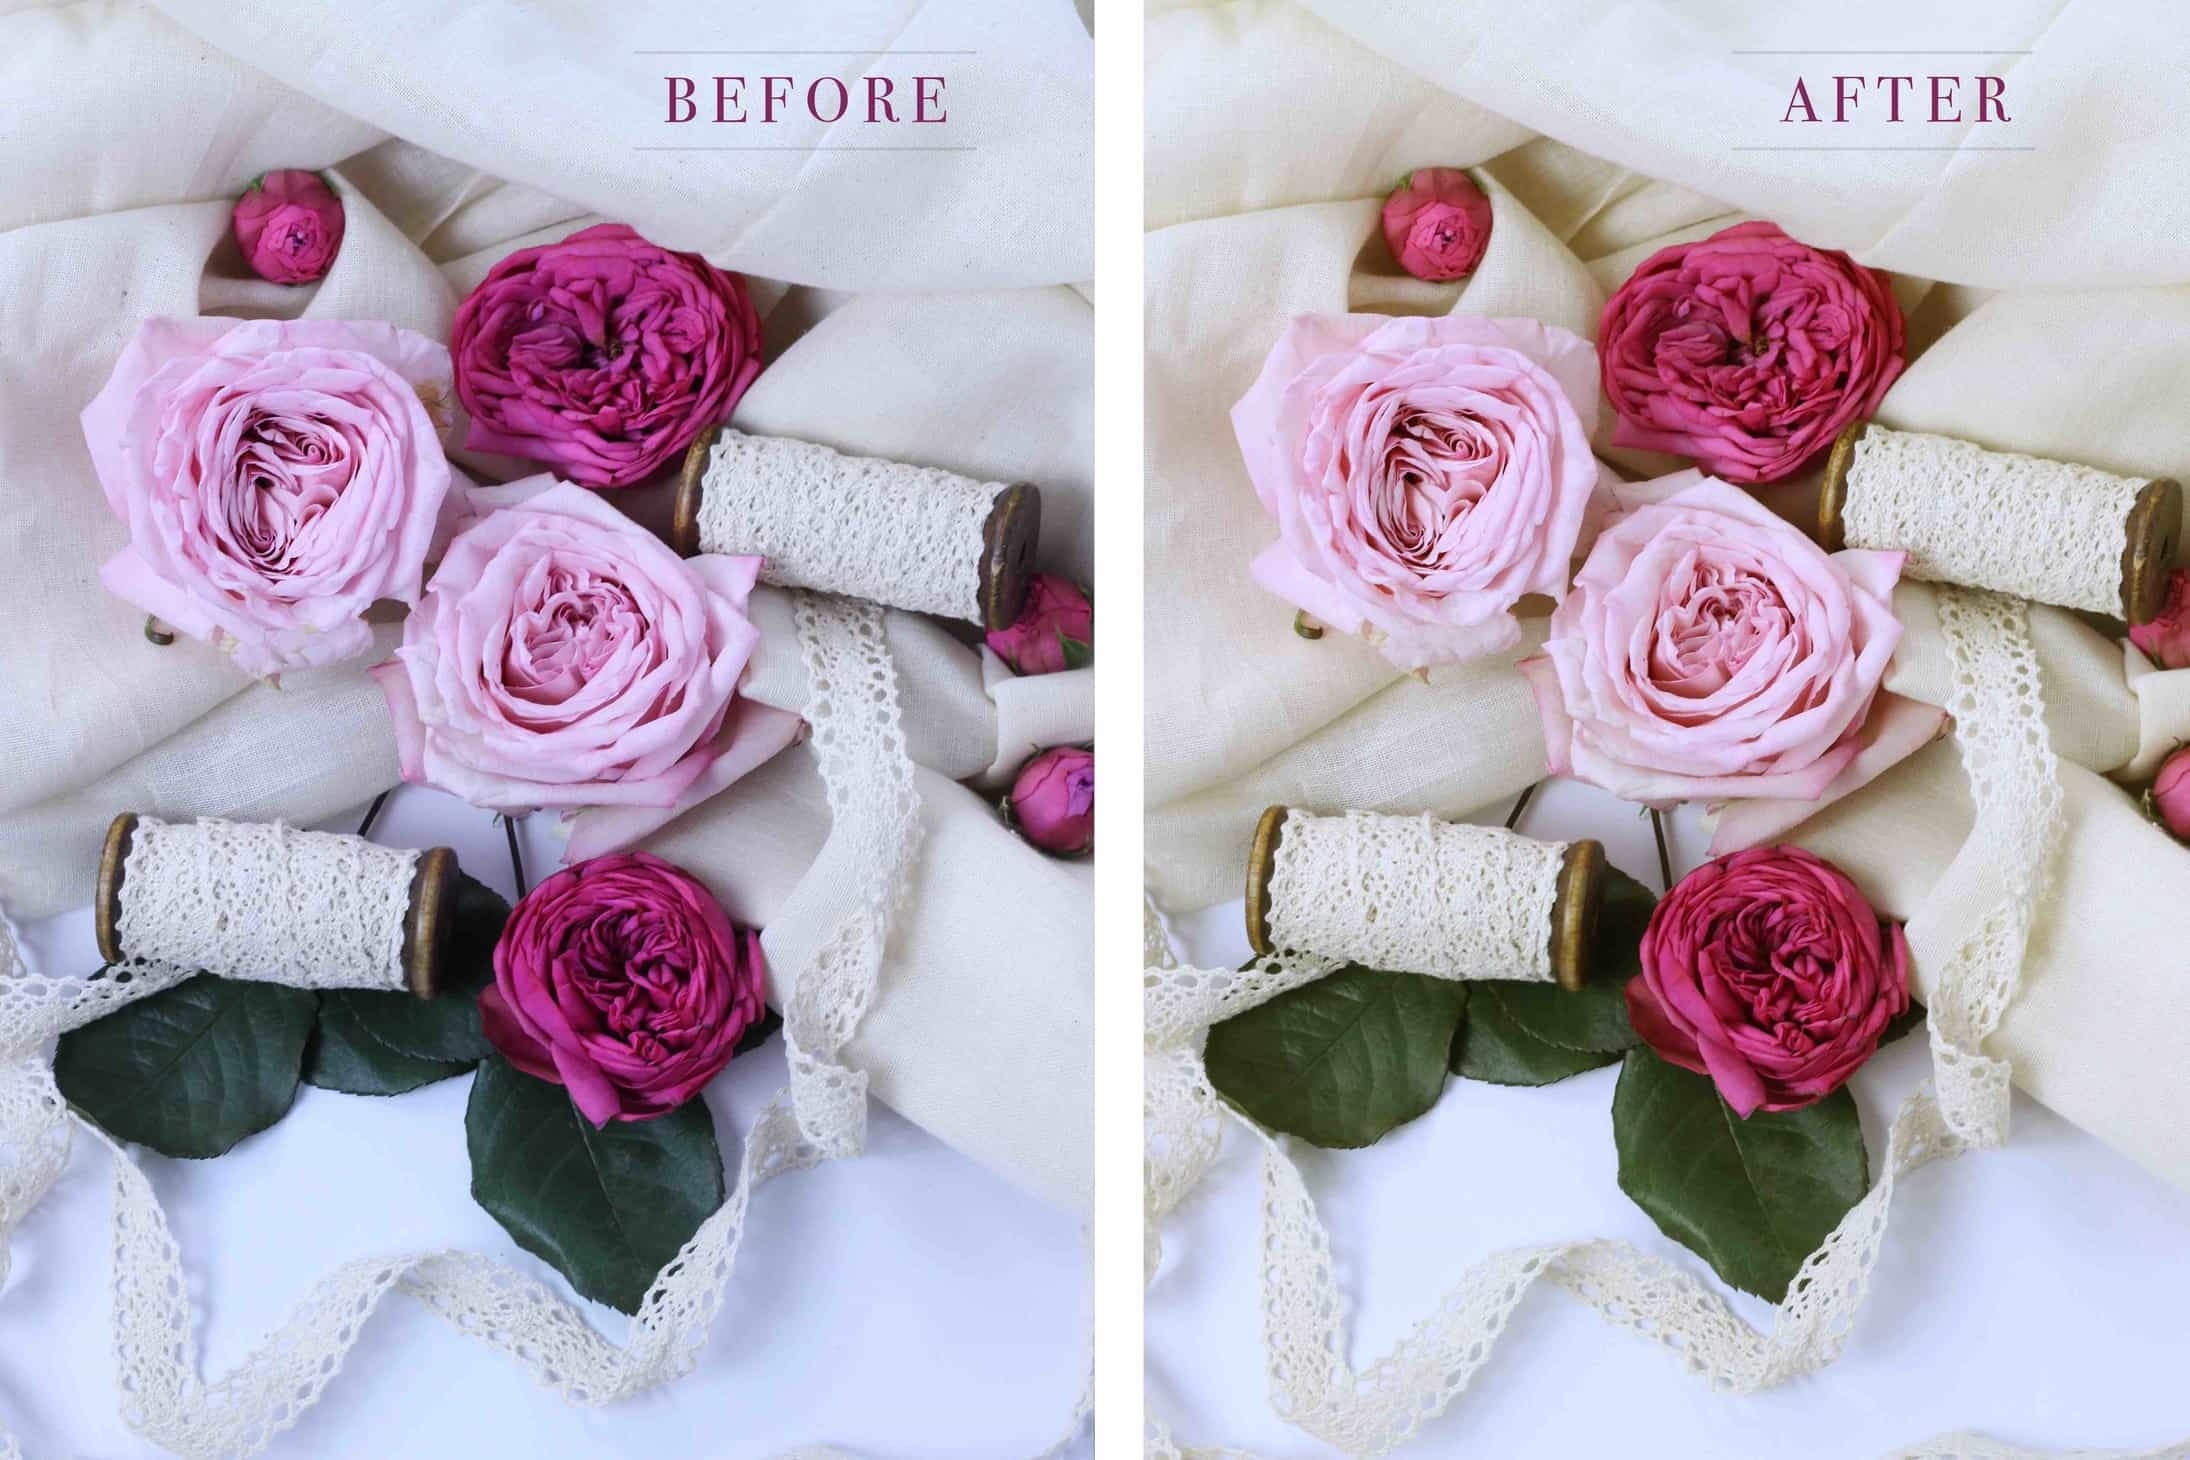 Photoshop editing, temperature in photoshop, correcting white balance in Photoshop, temperature correction in Photoshop